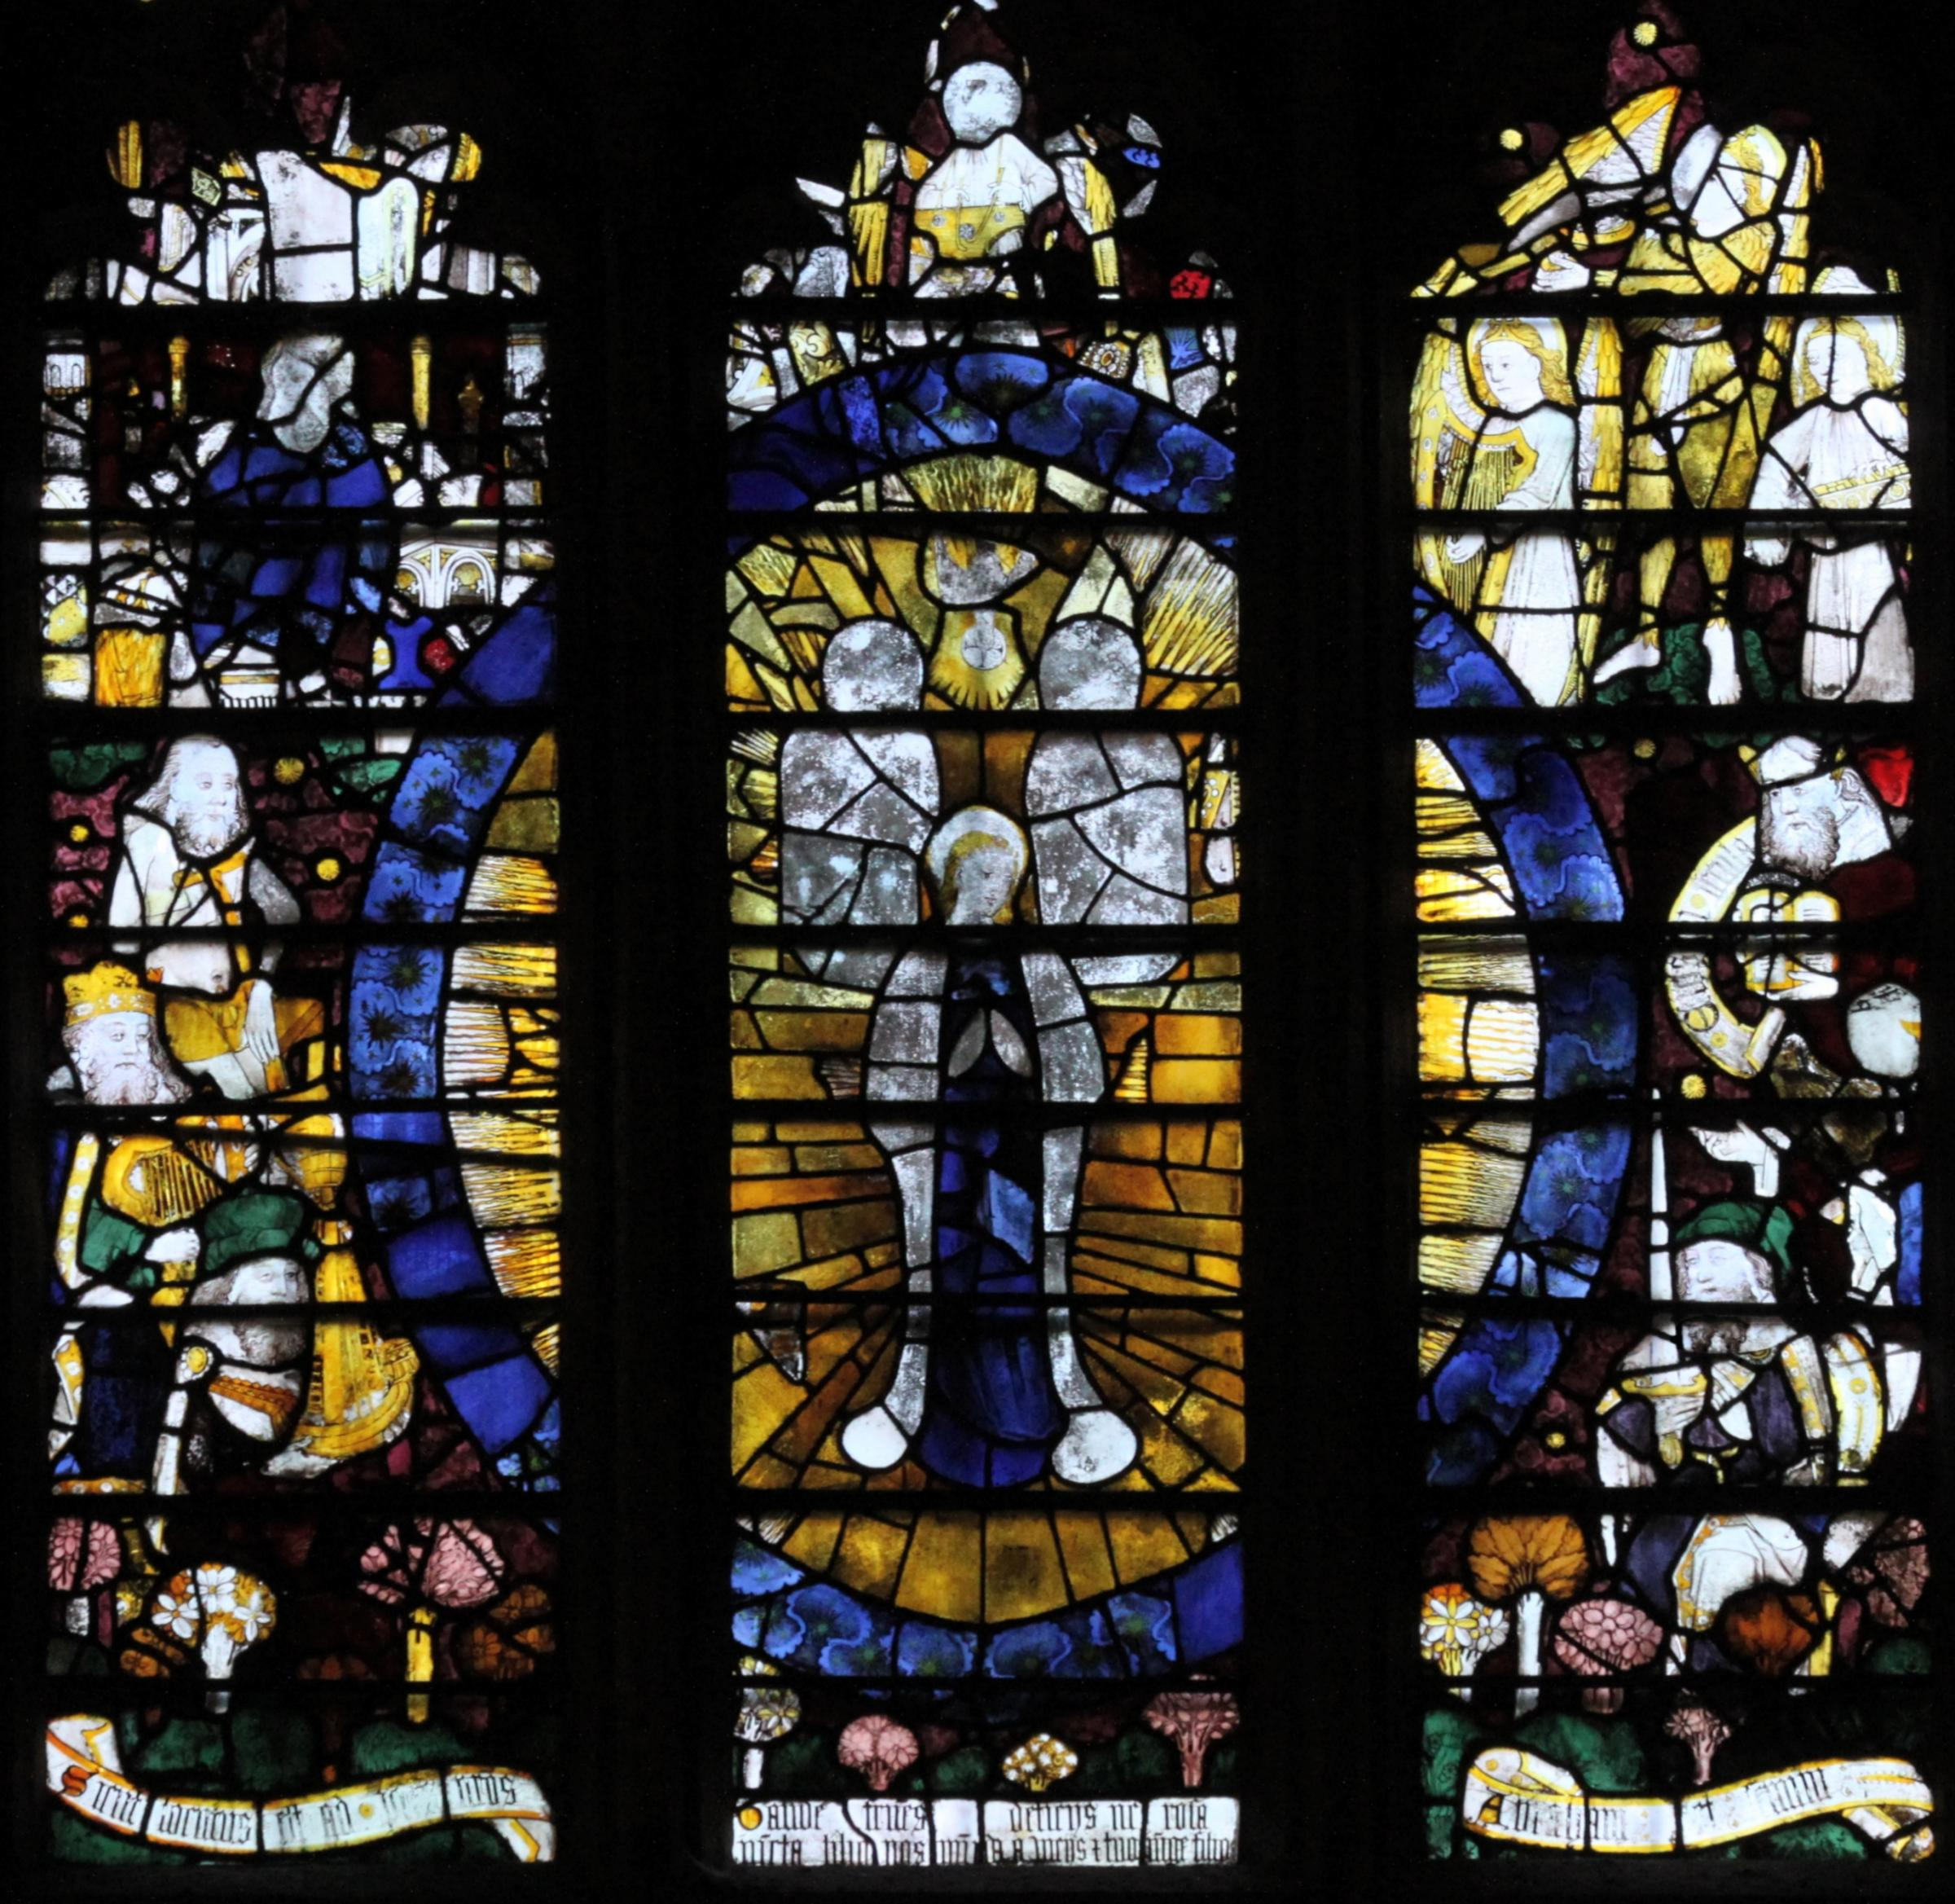 The Magnificat Window will be the focus of the lecture